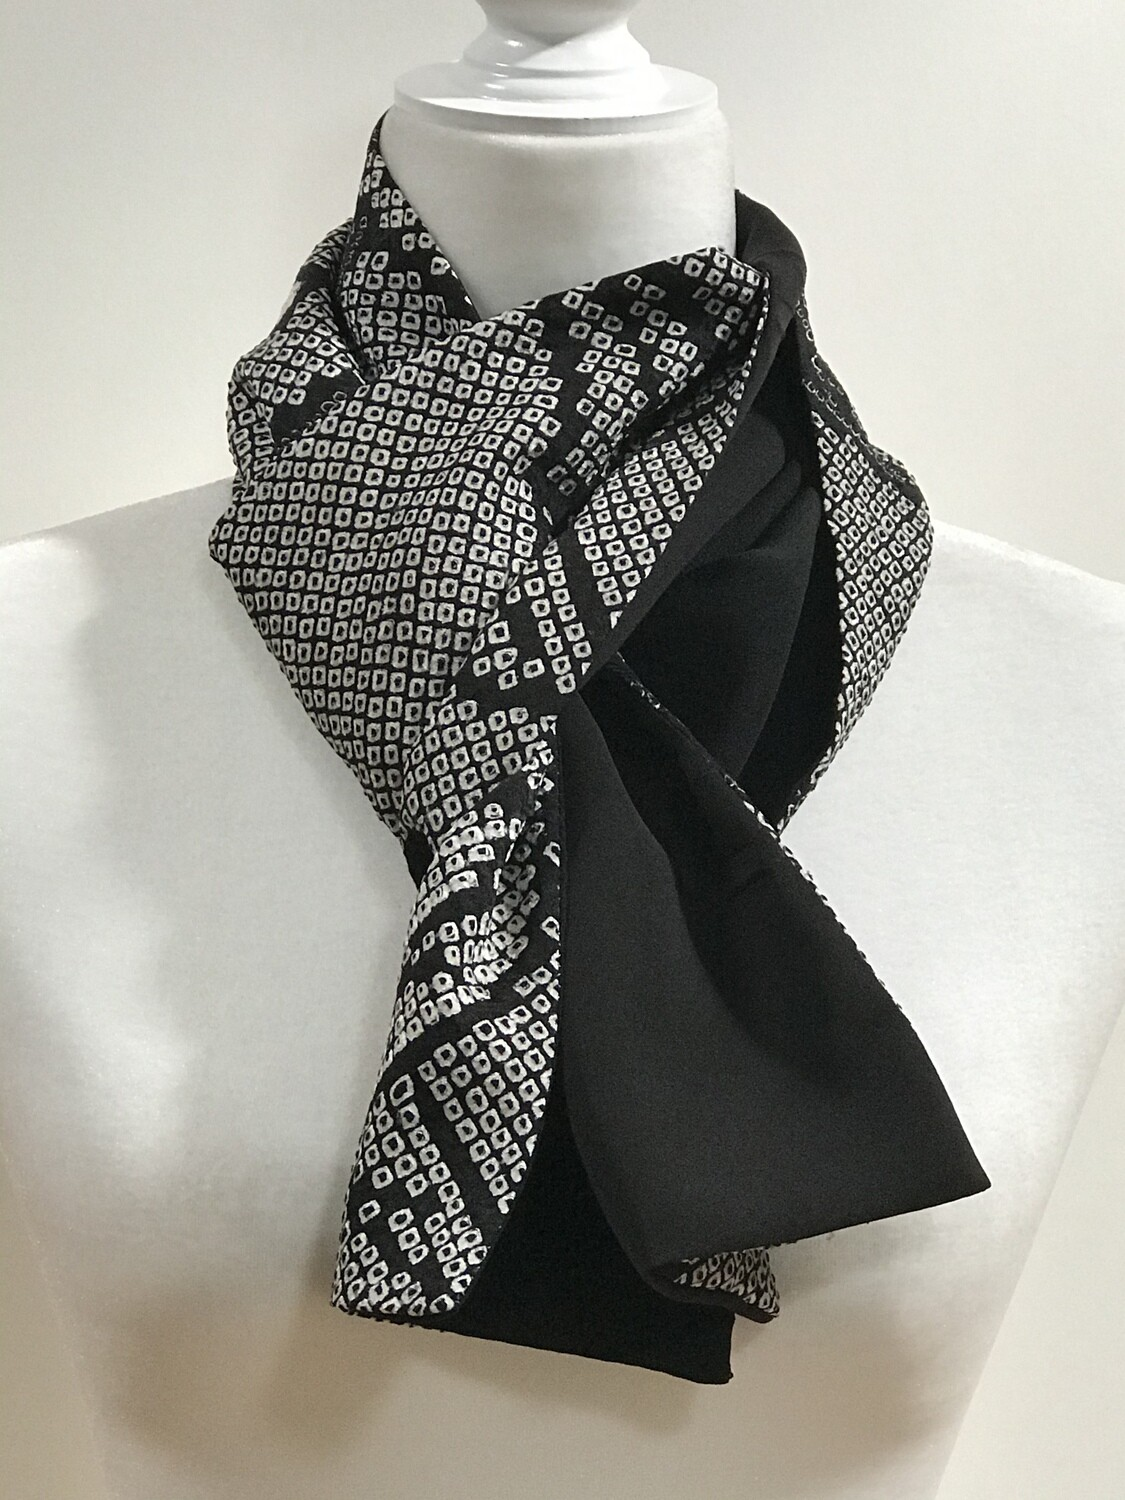 Scarf 6.75 x 60in